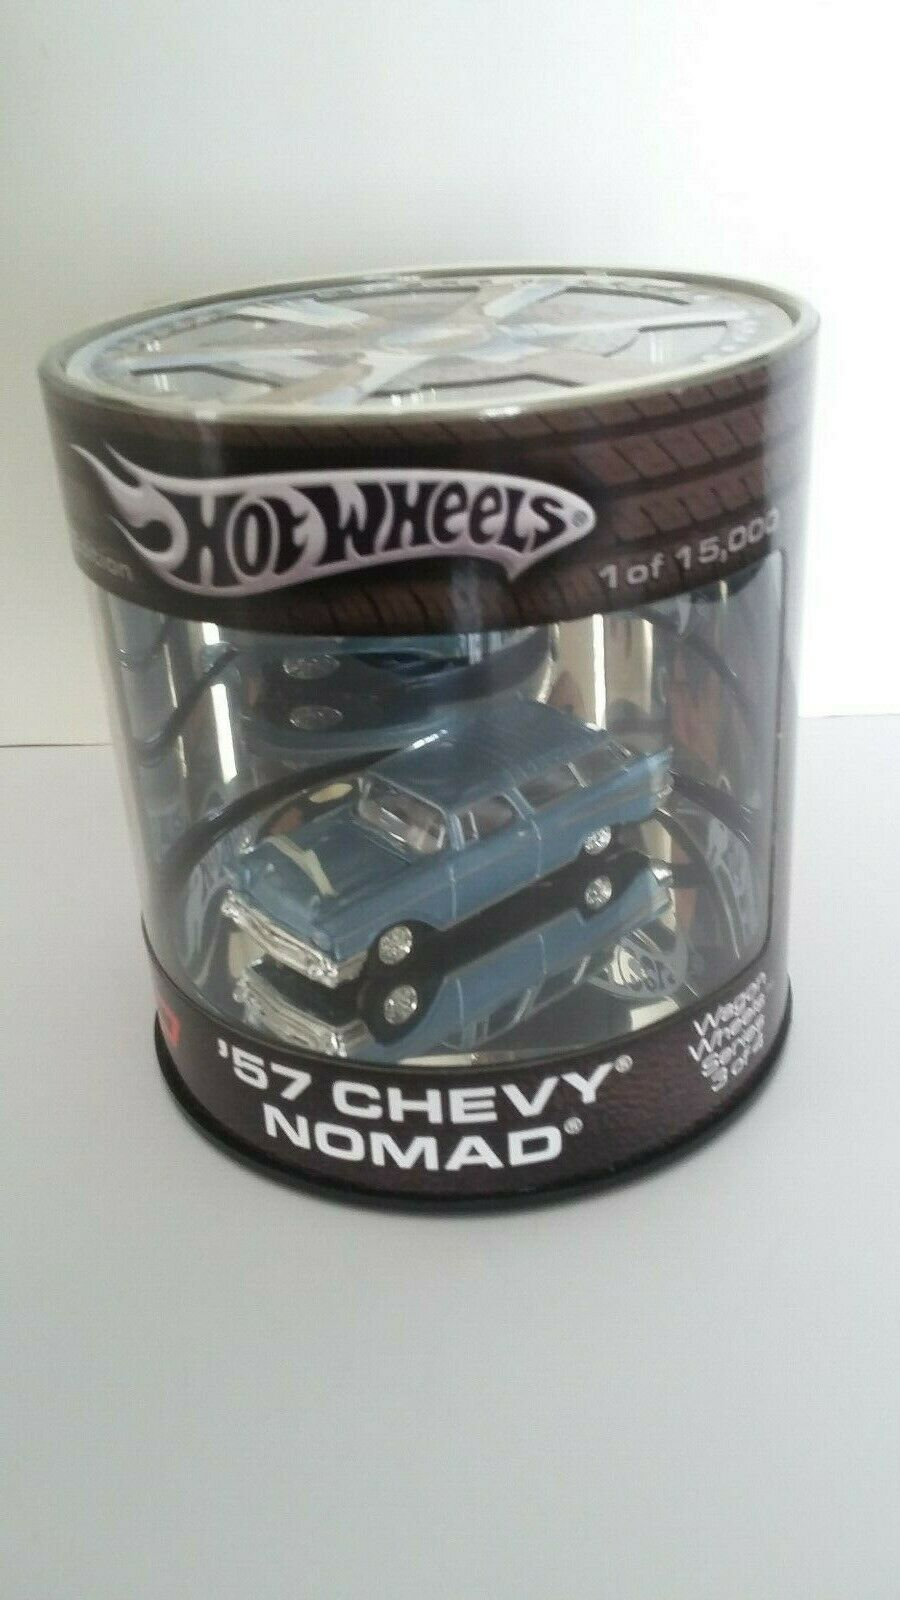 Hot Wheels Oil Can '57 Chevy Nomad Wagon Wheels Series bluee